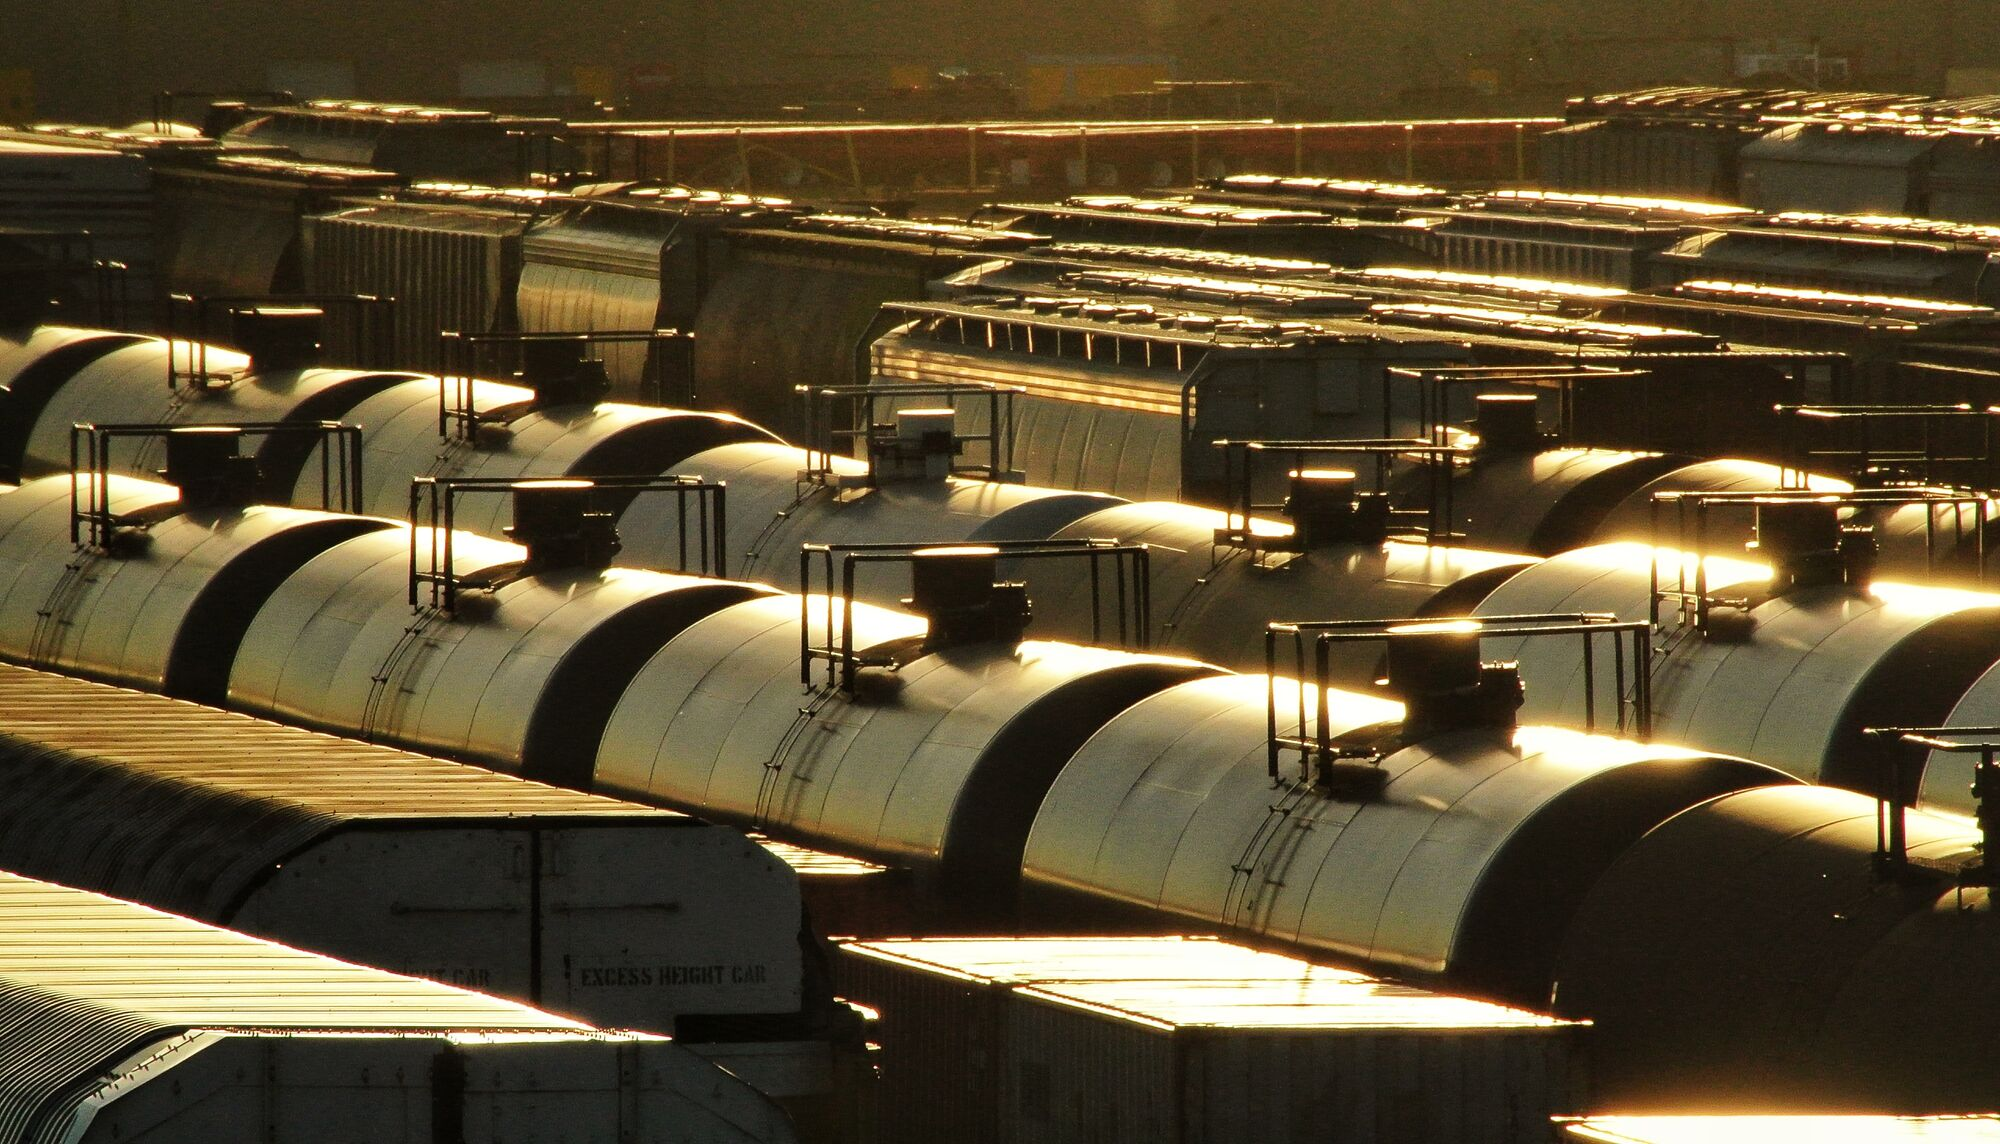 The sunset casts a warm glow on rail cars as they move through the CP Rail yards in Winnipeg.